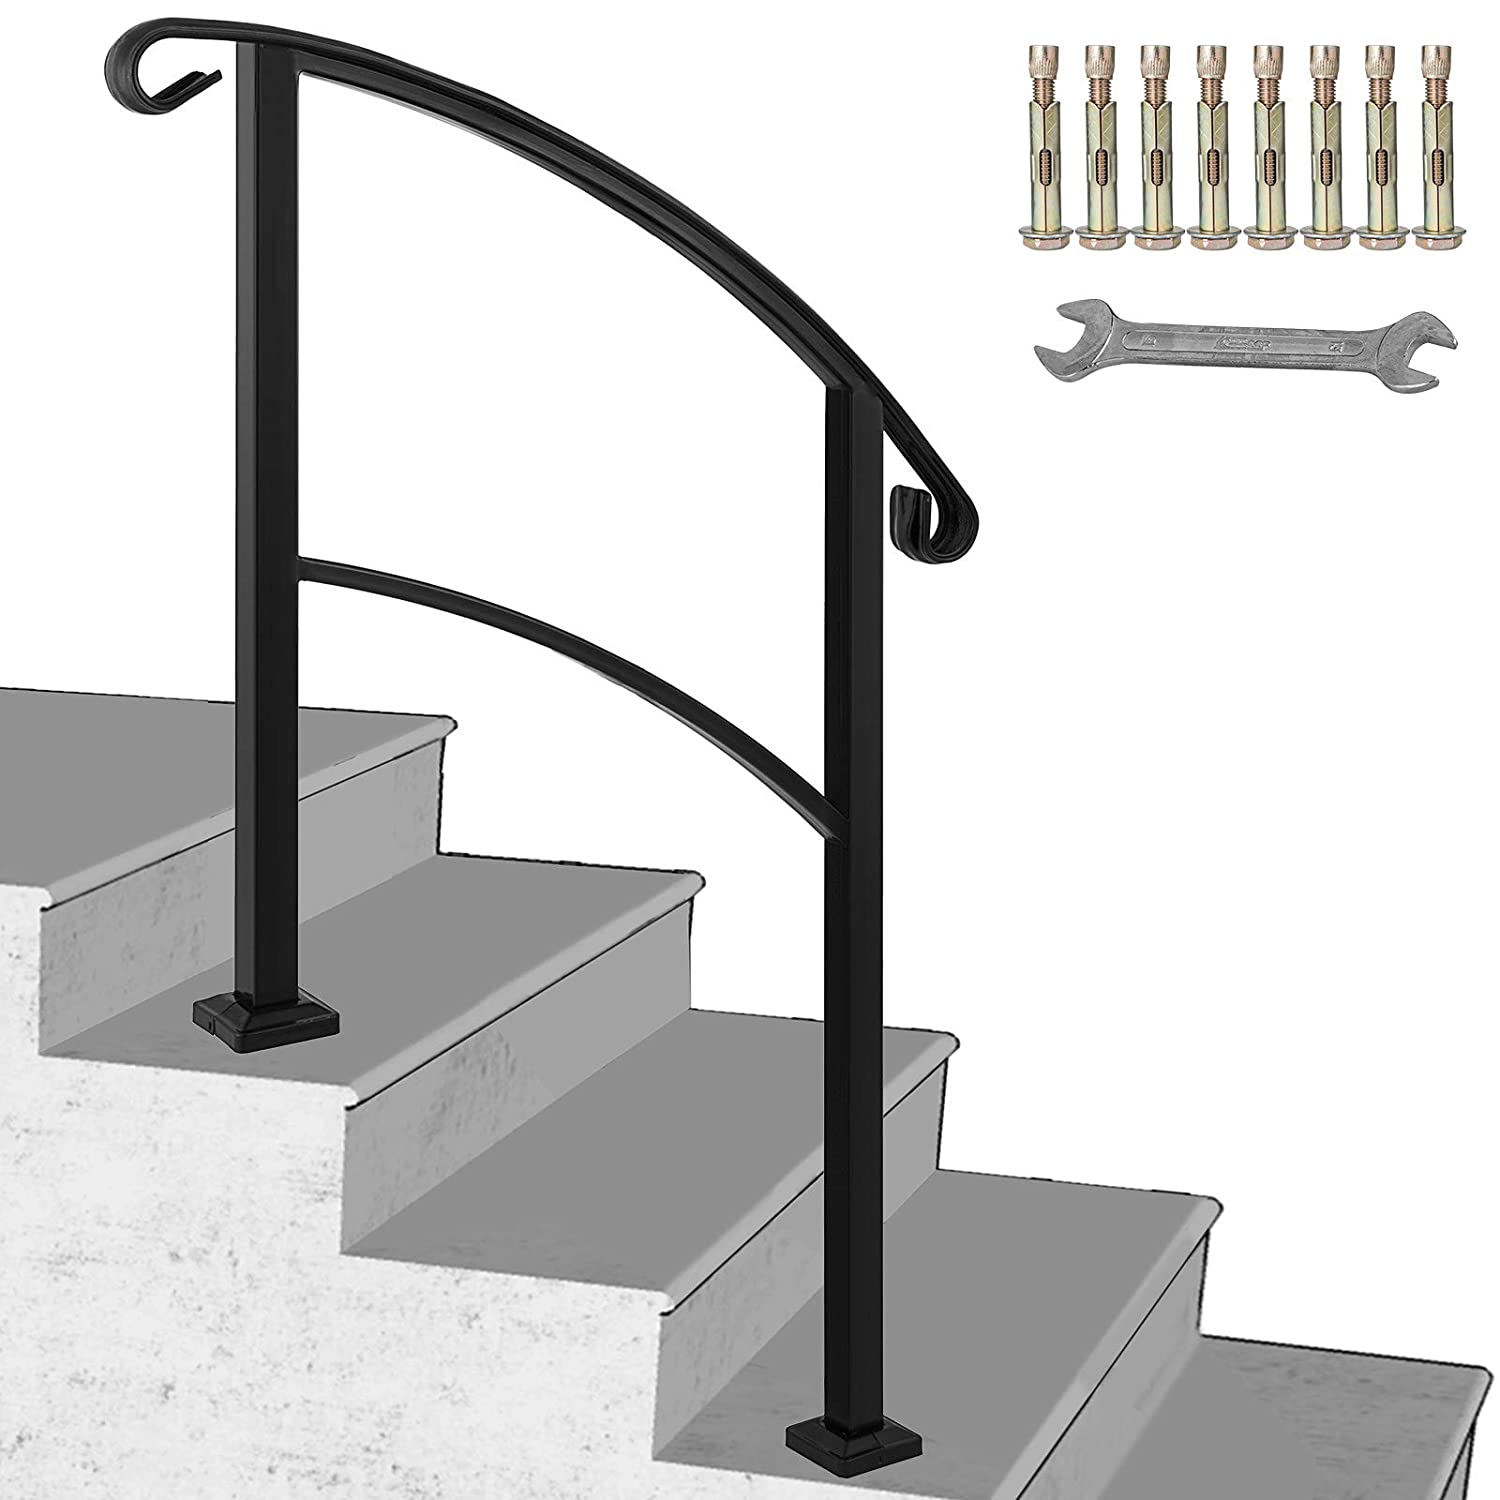 Happybuy 3-Step Transitional Handrail Fits 1 or 3 Steps Matte Black Stair Rail Wrought Iron Handrail with Installation Kit Hand Rails for Outdoor Steps